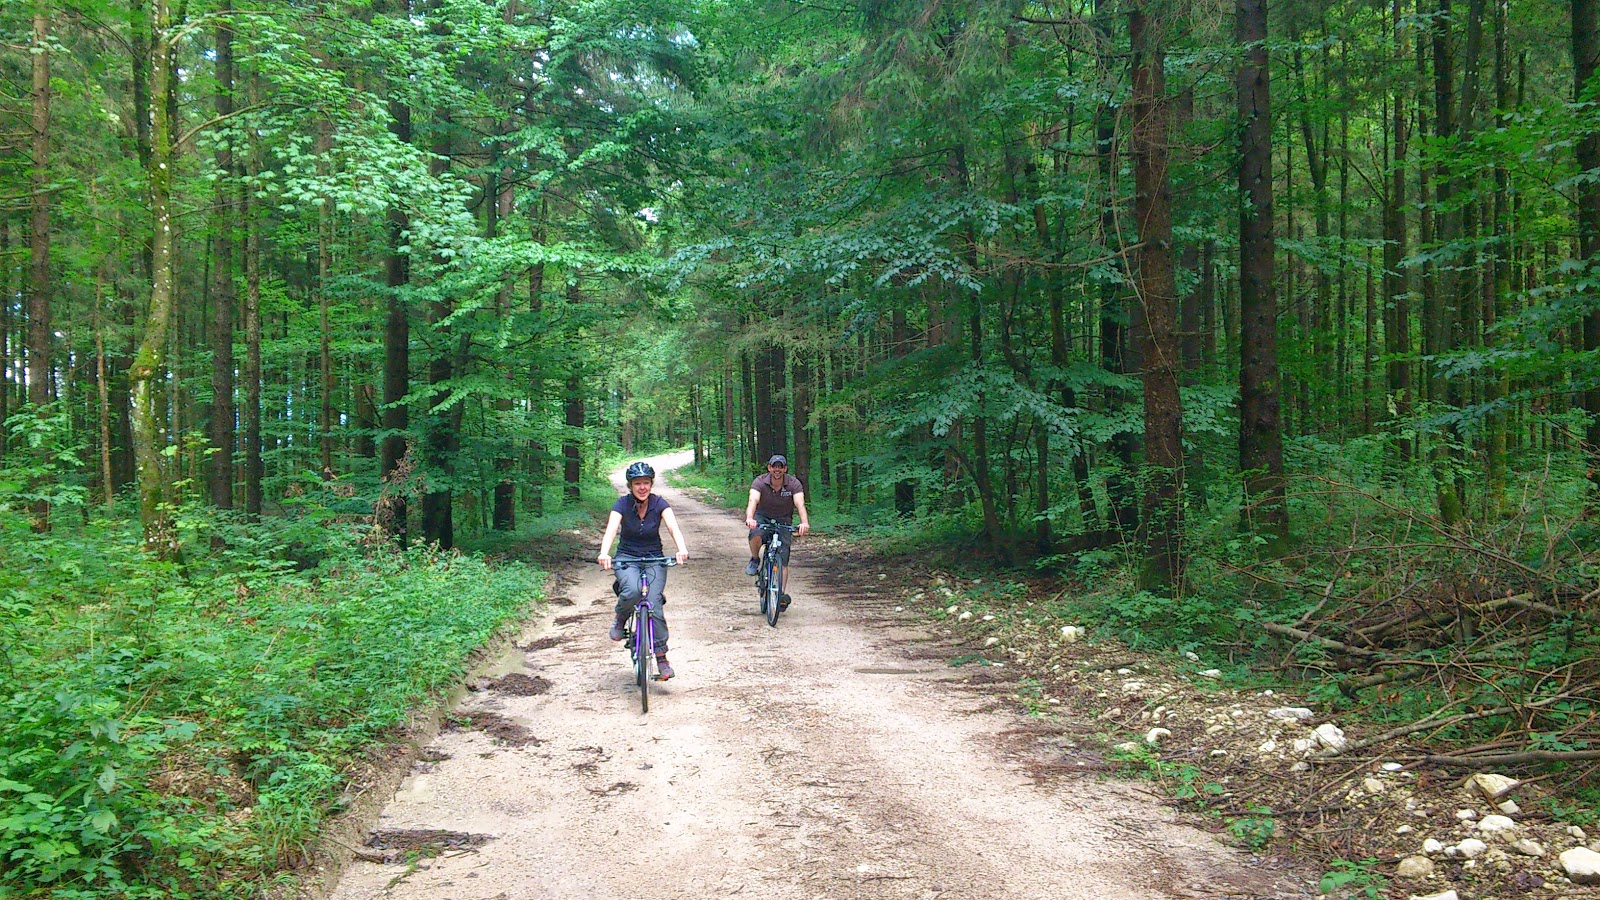 The forest track provides a lovely bike route to get between Ebensee and Bad Ischl.